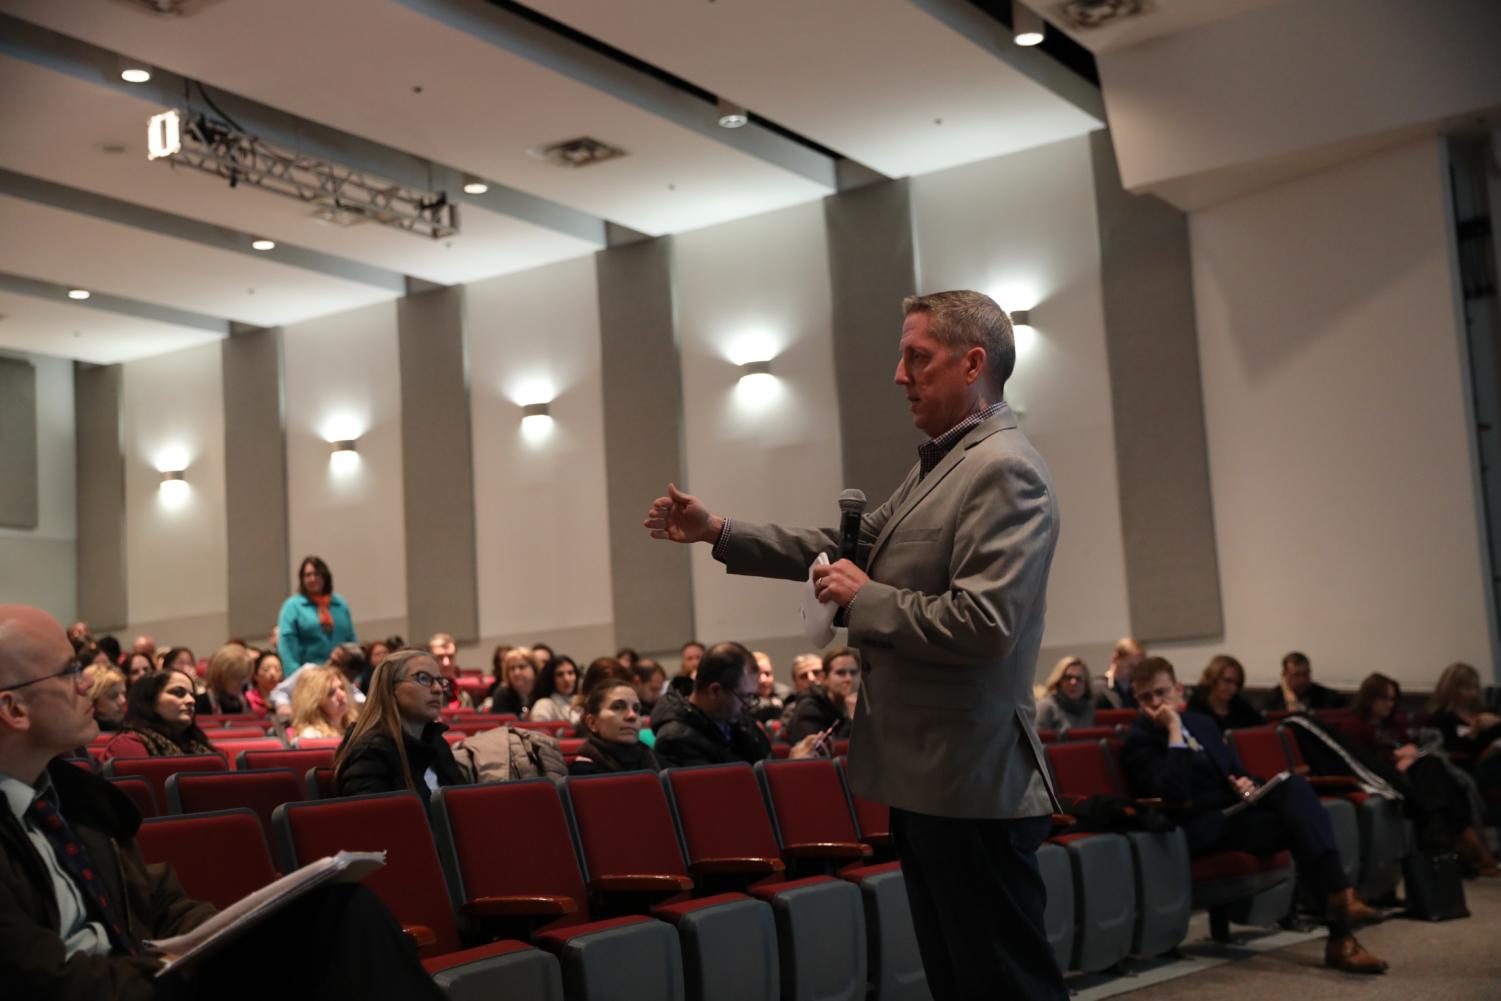 Special projects administrator Kevin Sneed elaborates on the current overcrowding situation and solutions. The meeting was held in the McLean auditorium on Feb.19.